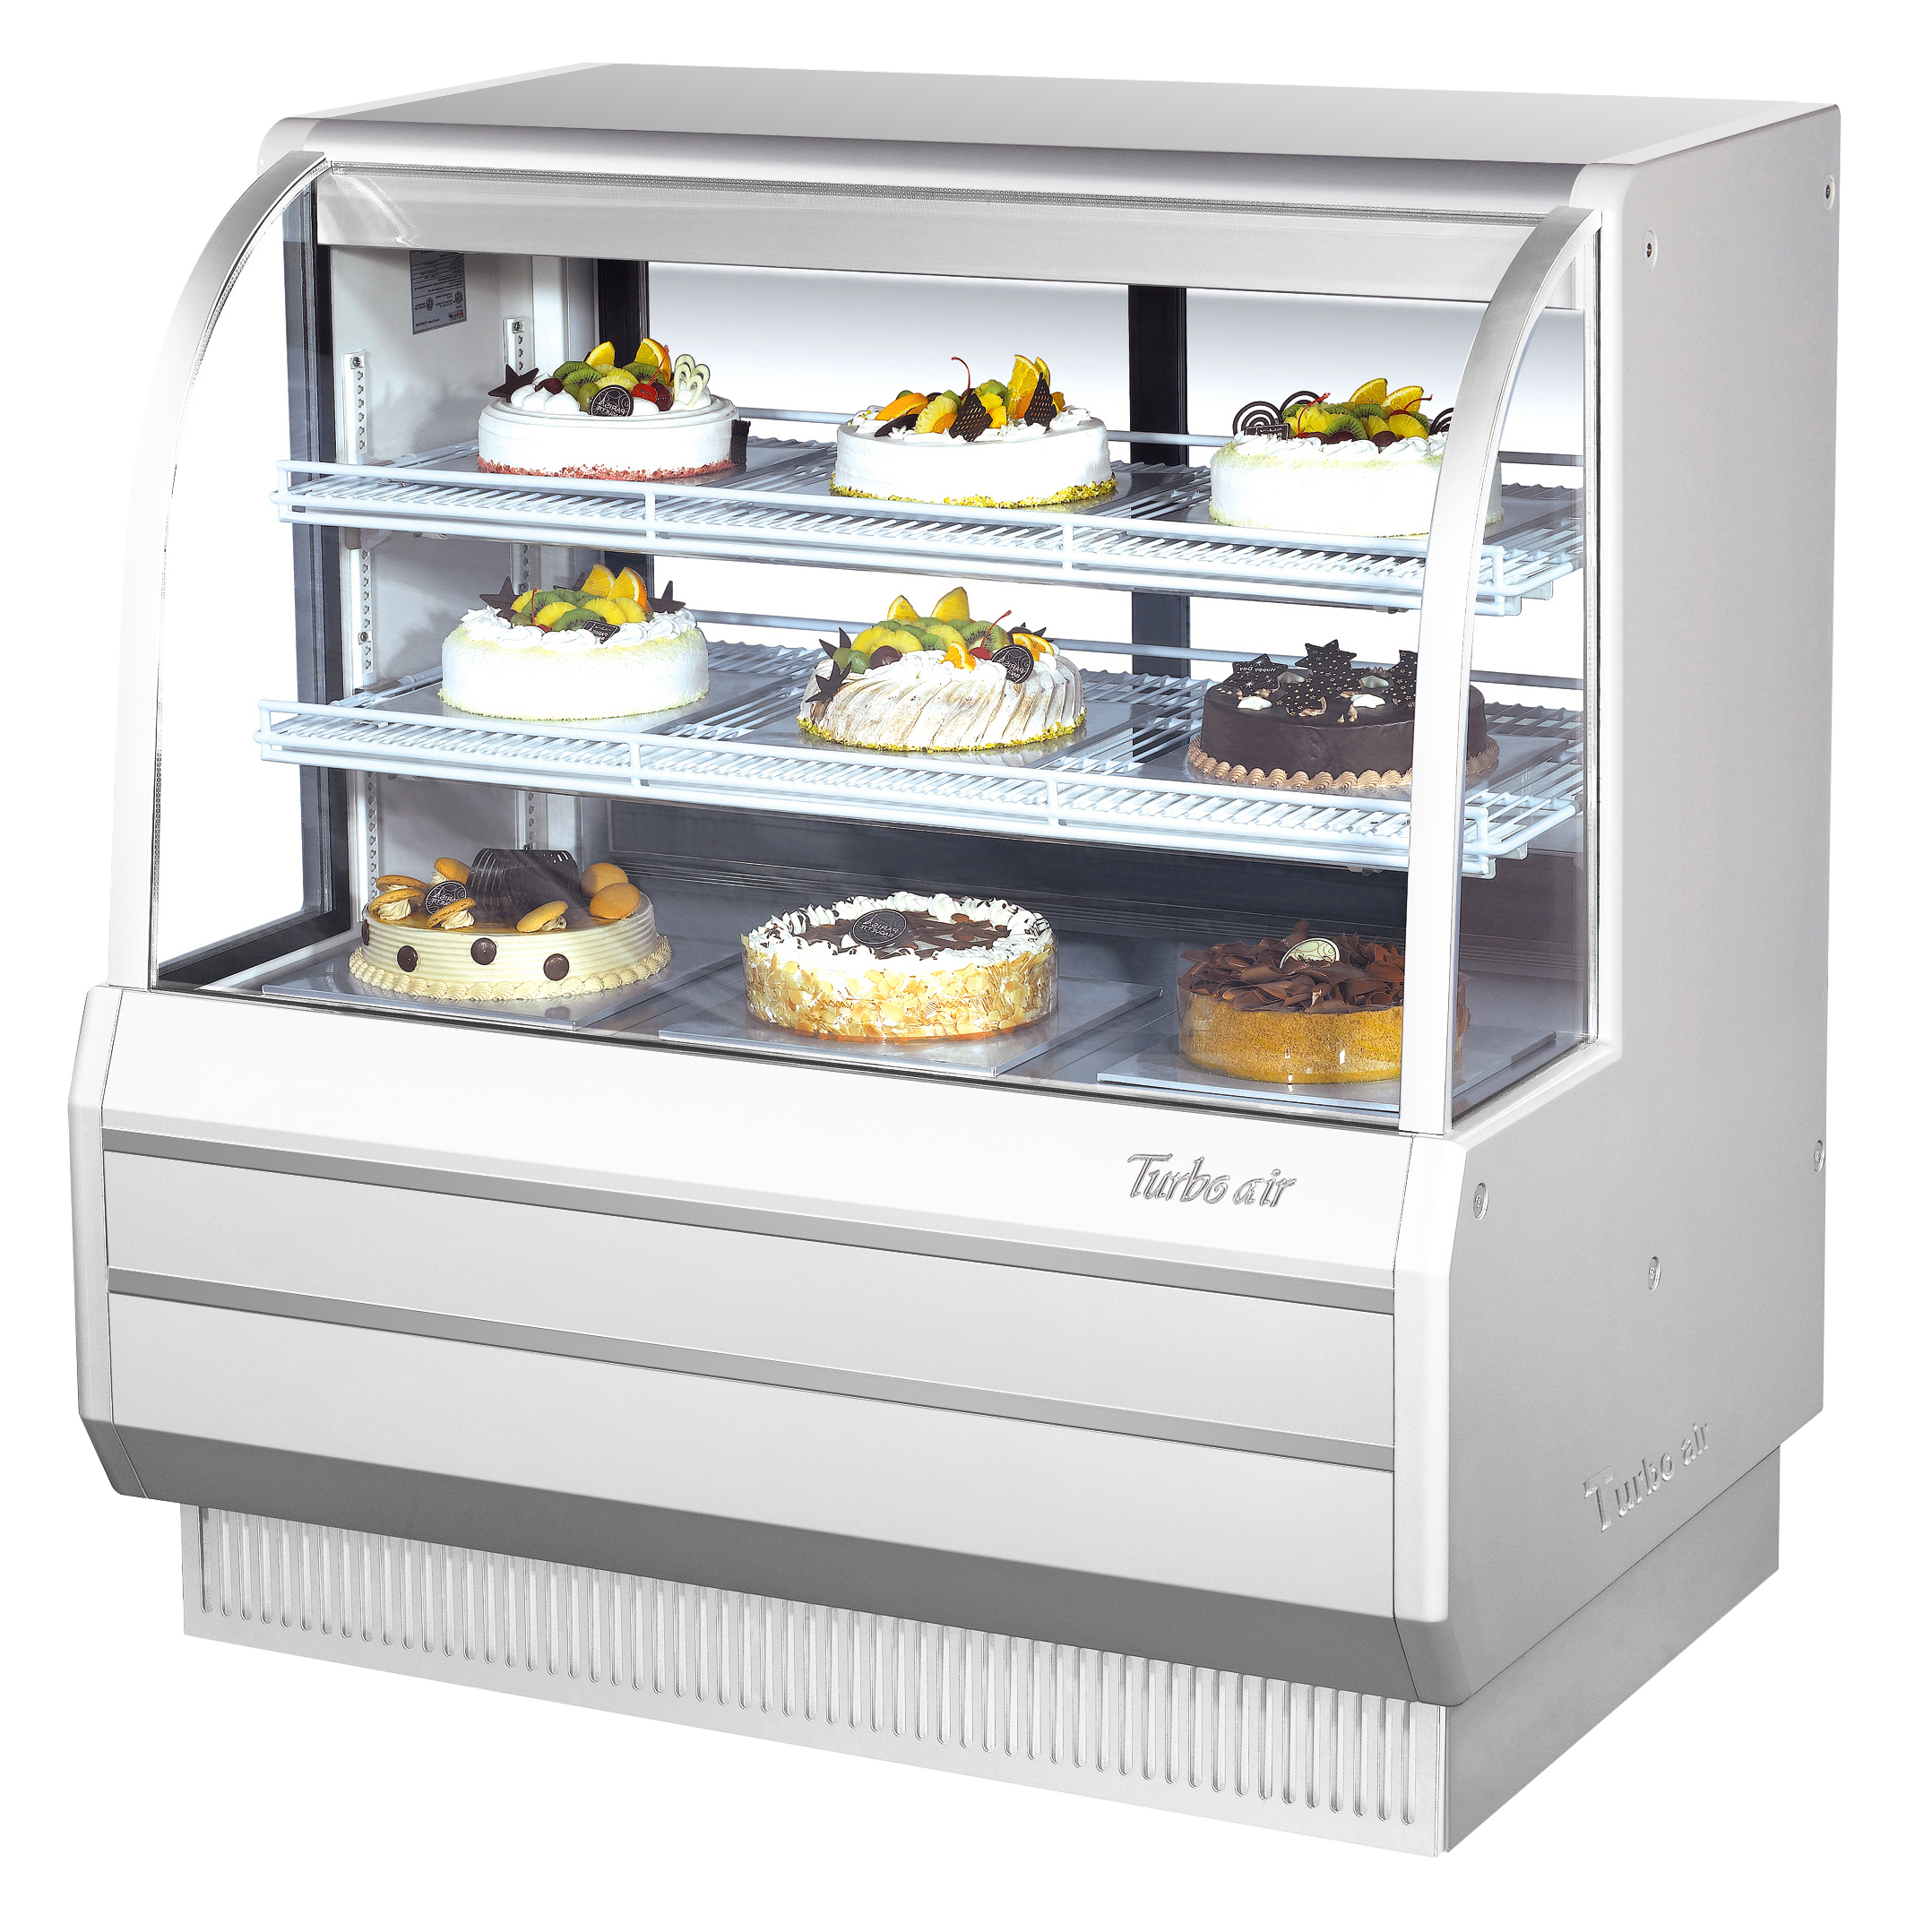 Turbo Air TCGB-48-W(B)-N display case, refrigerated bakery